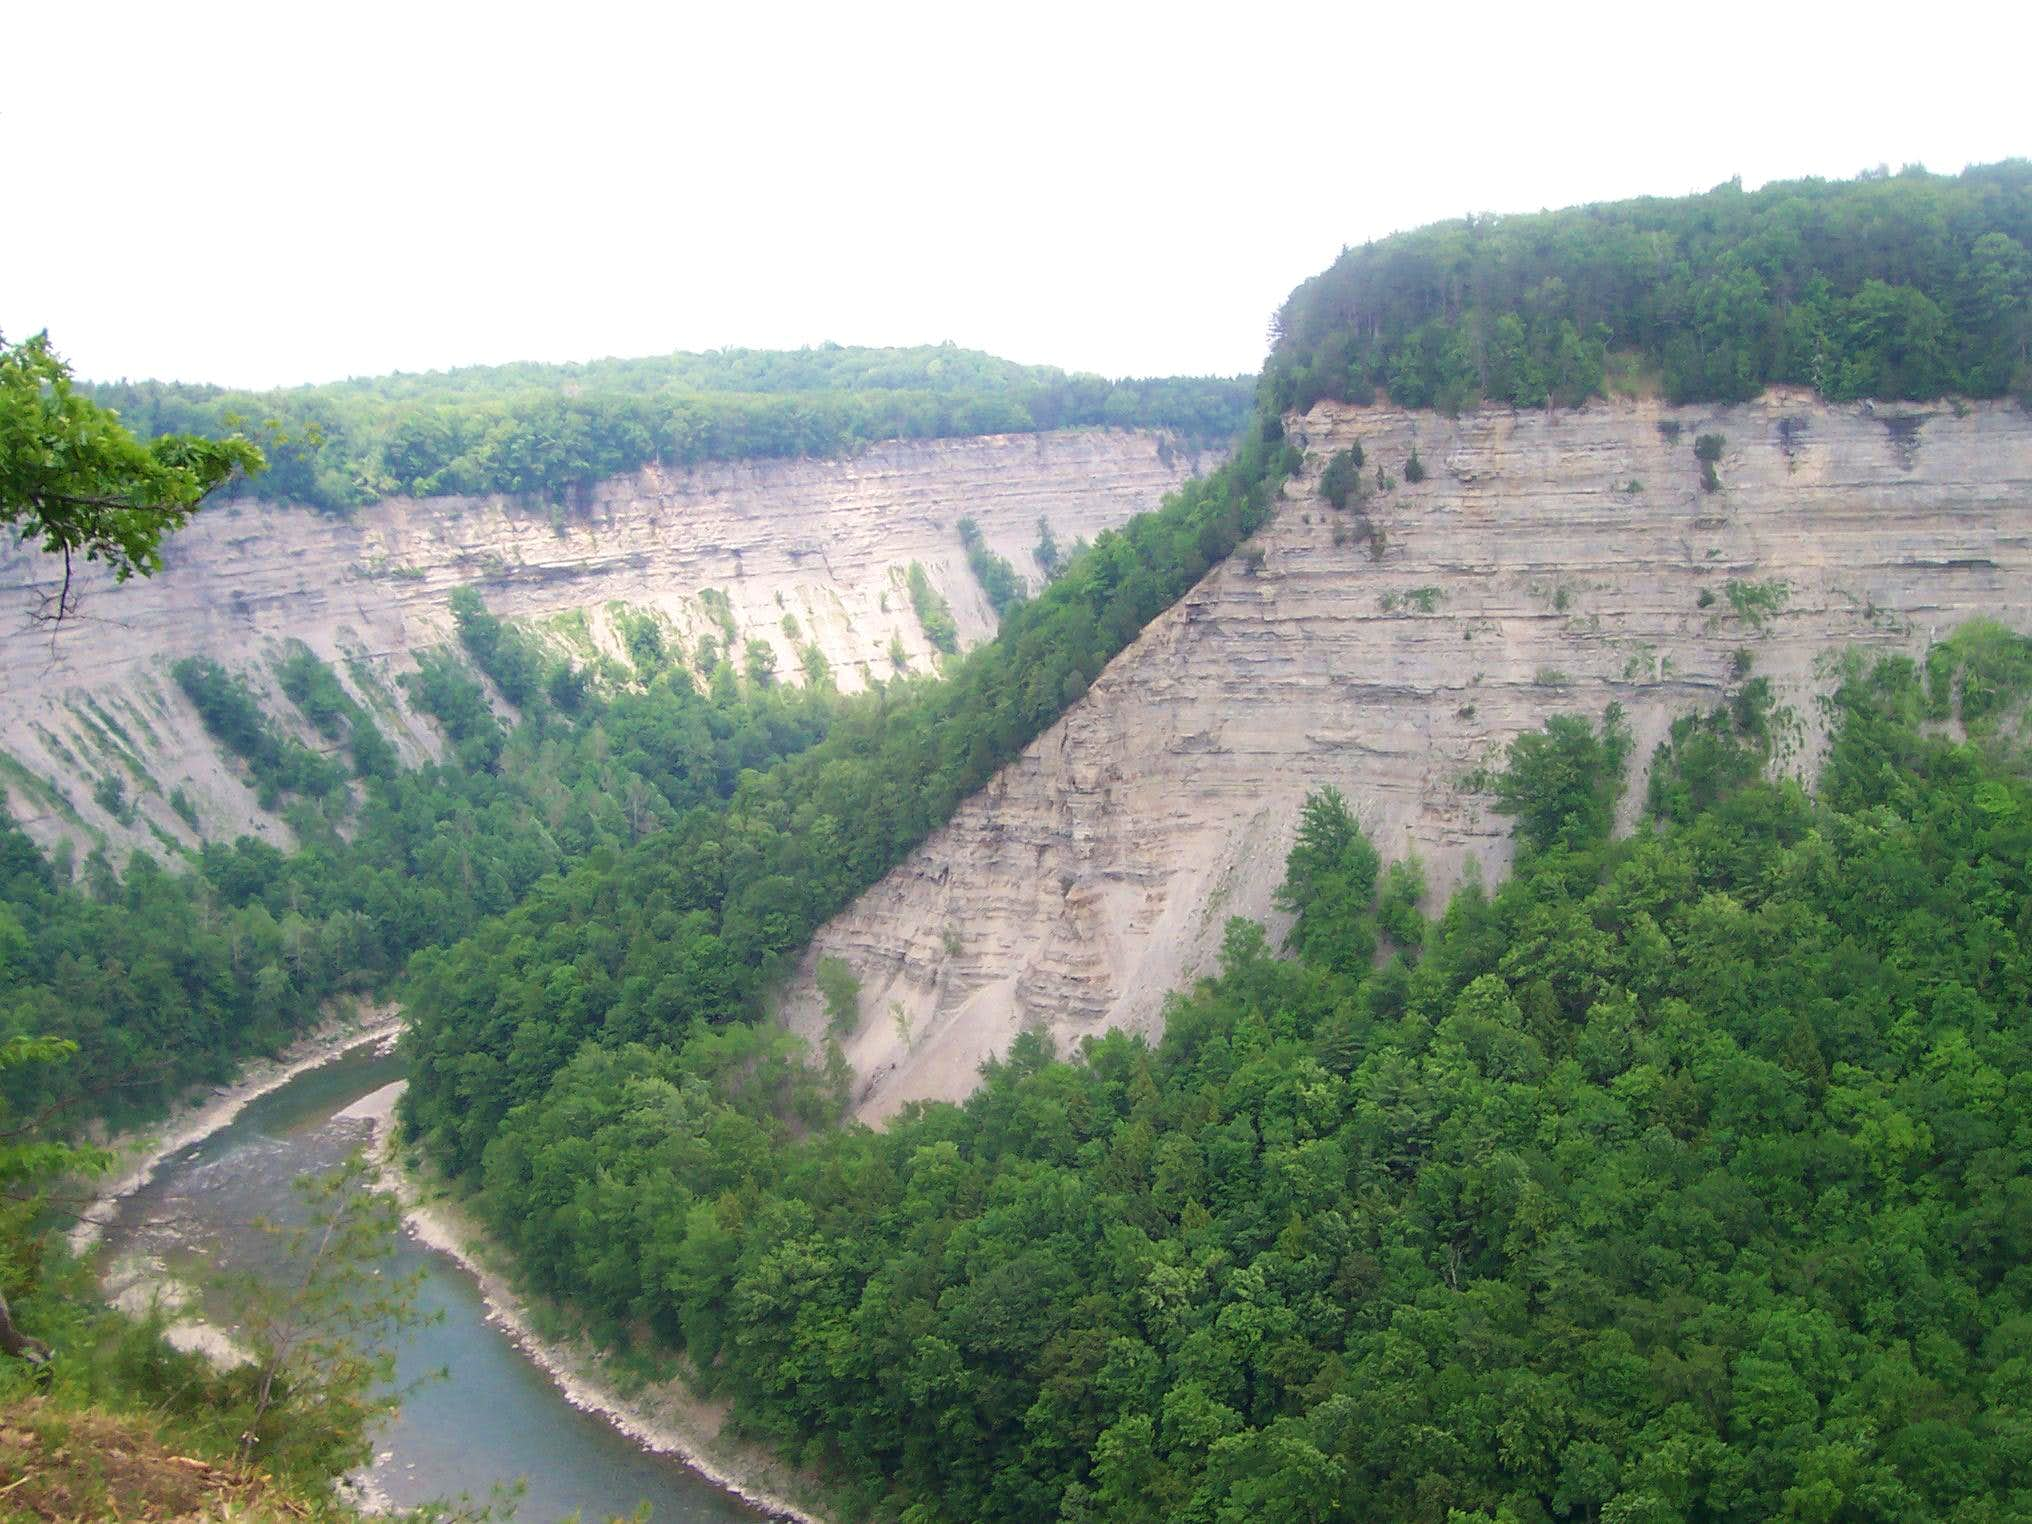 Hiking Letchworth: The Gorge Trail